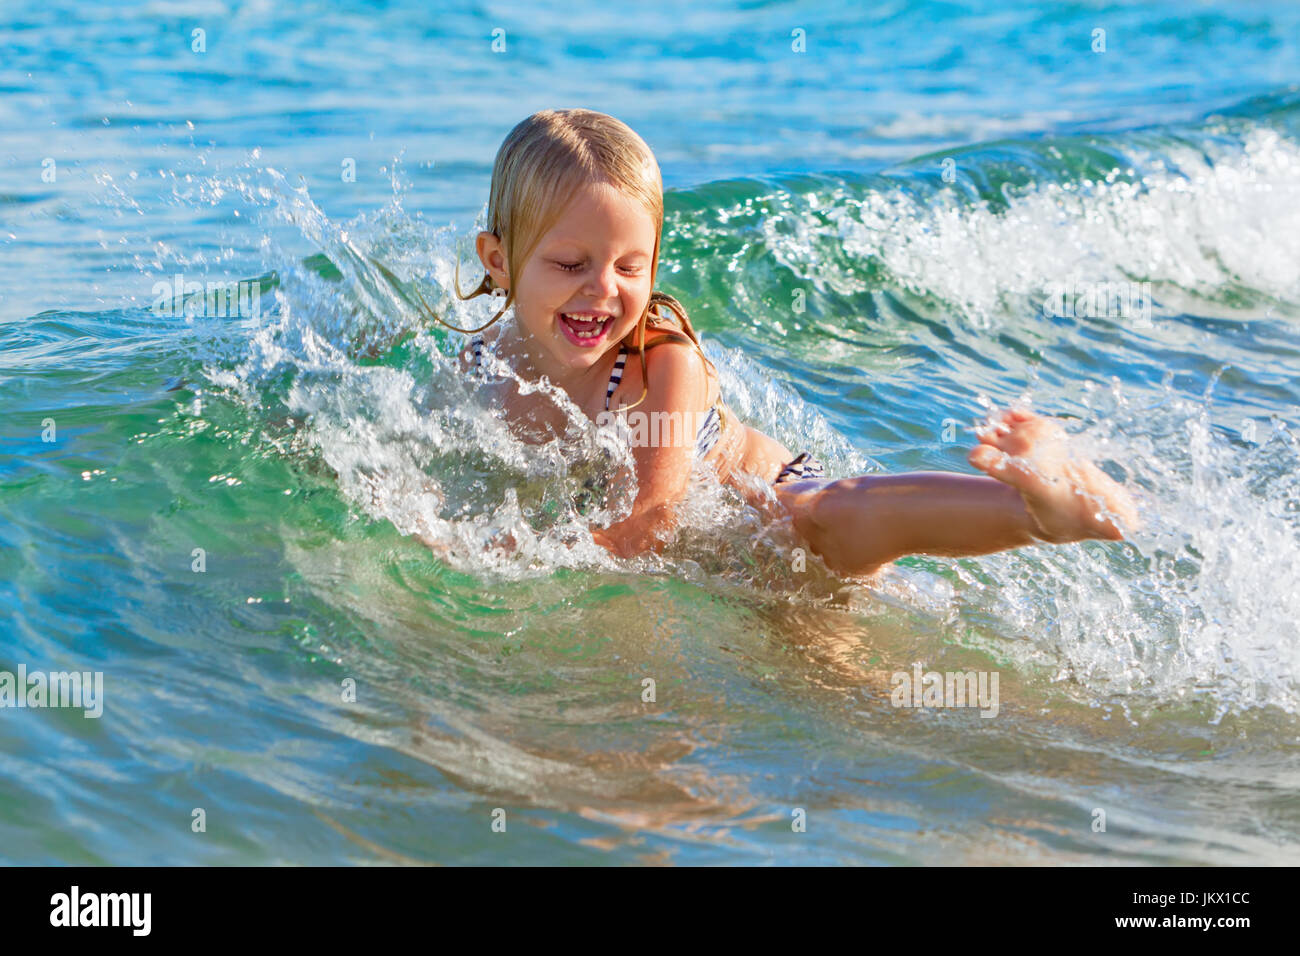 Happy family lifestyle. Baby girl splashing and jumping with fun in breaking waves. Summer travel, water sport outdoor - Stock Image